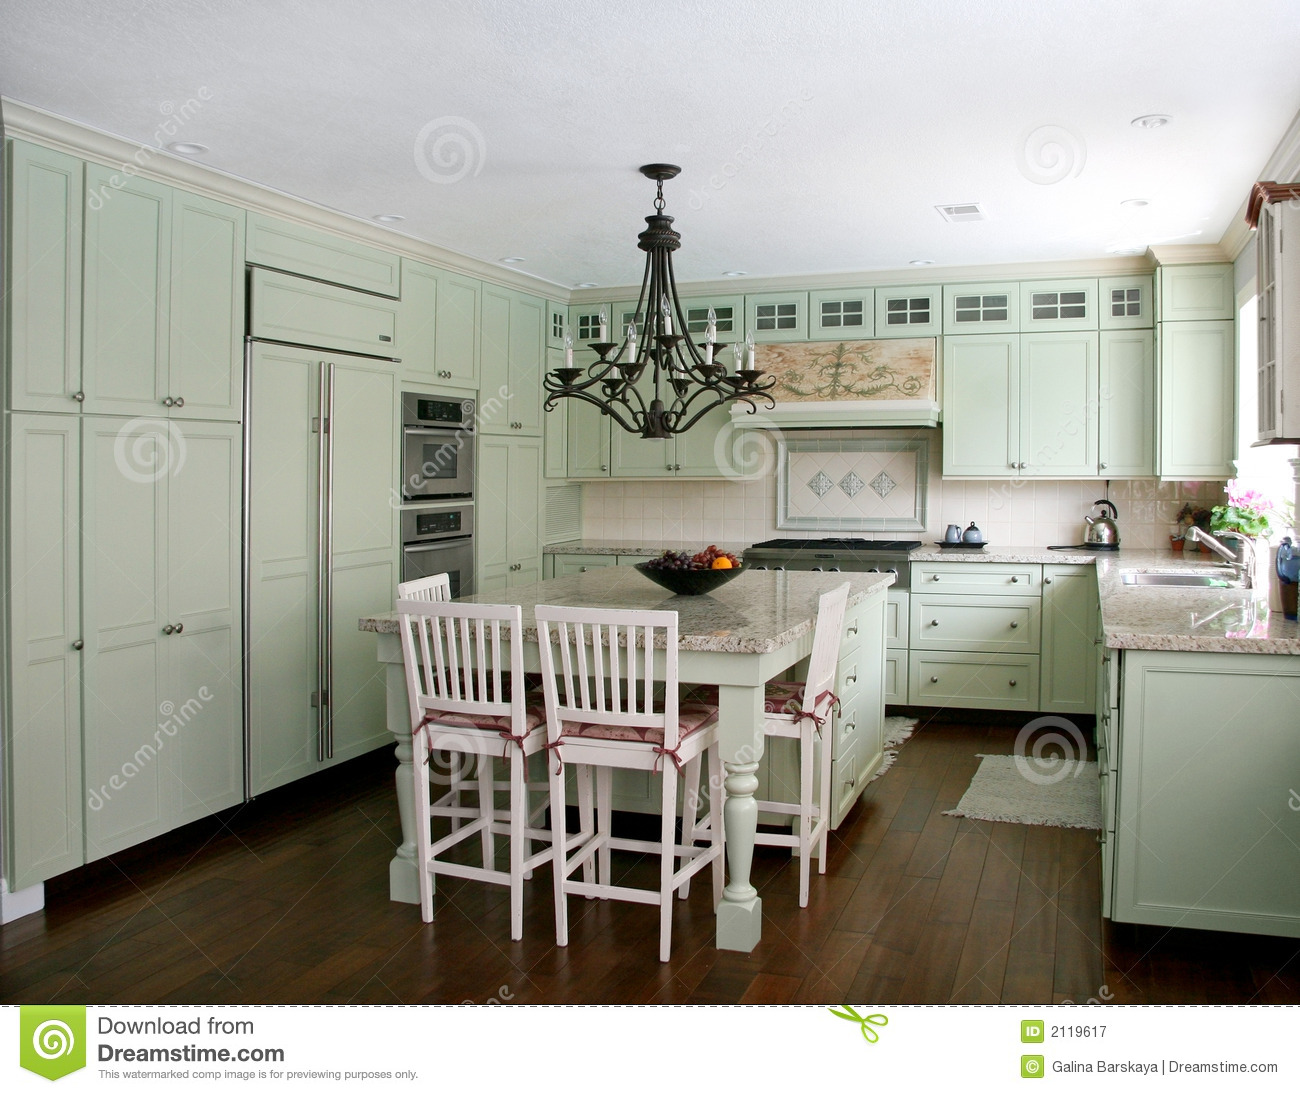 Country Style Kitchen Royalty Free Stock Photography  : country style kitchen 2119617 from www.dreamstime.com size 1300 x 1094 jpeg 370kB